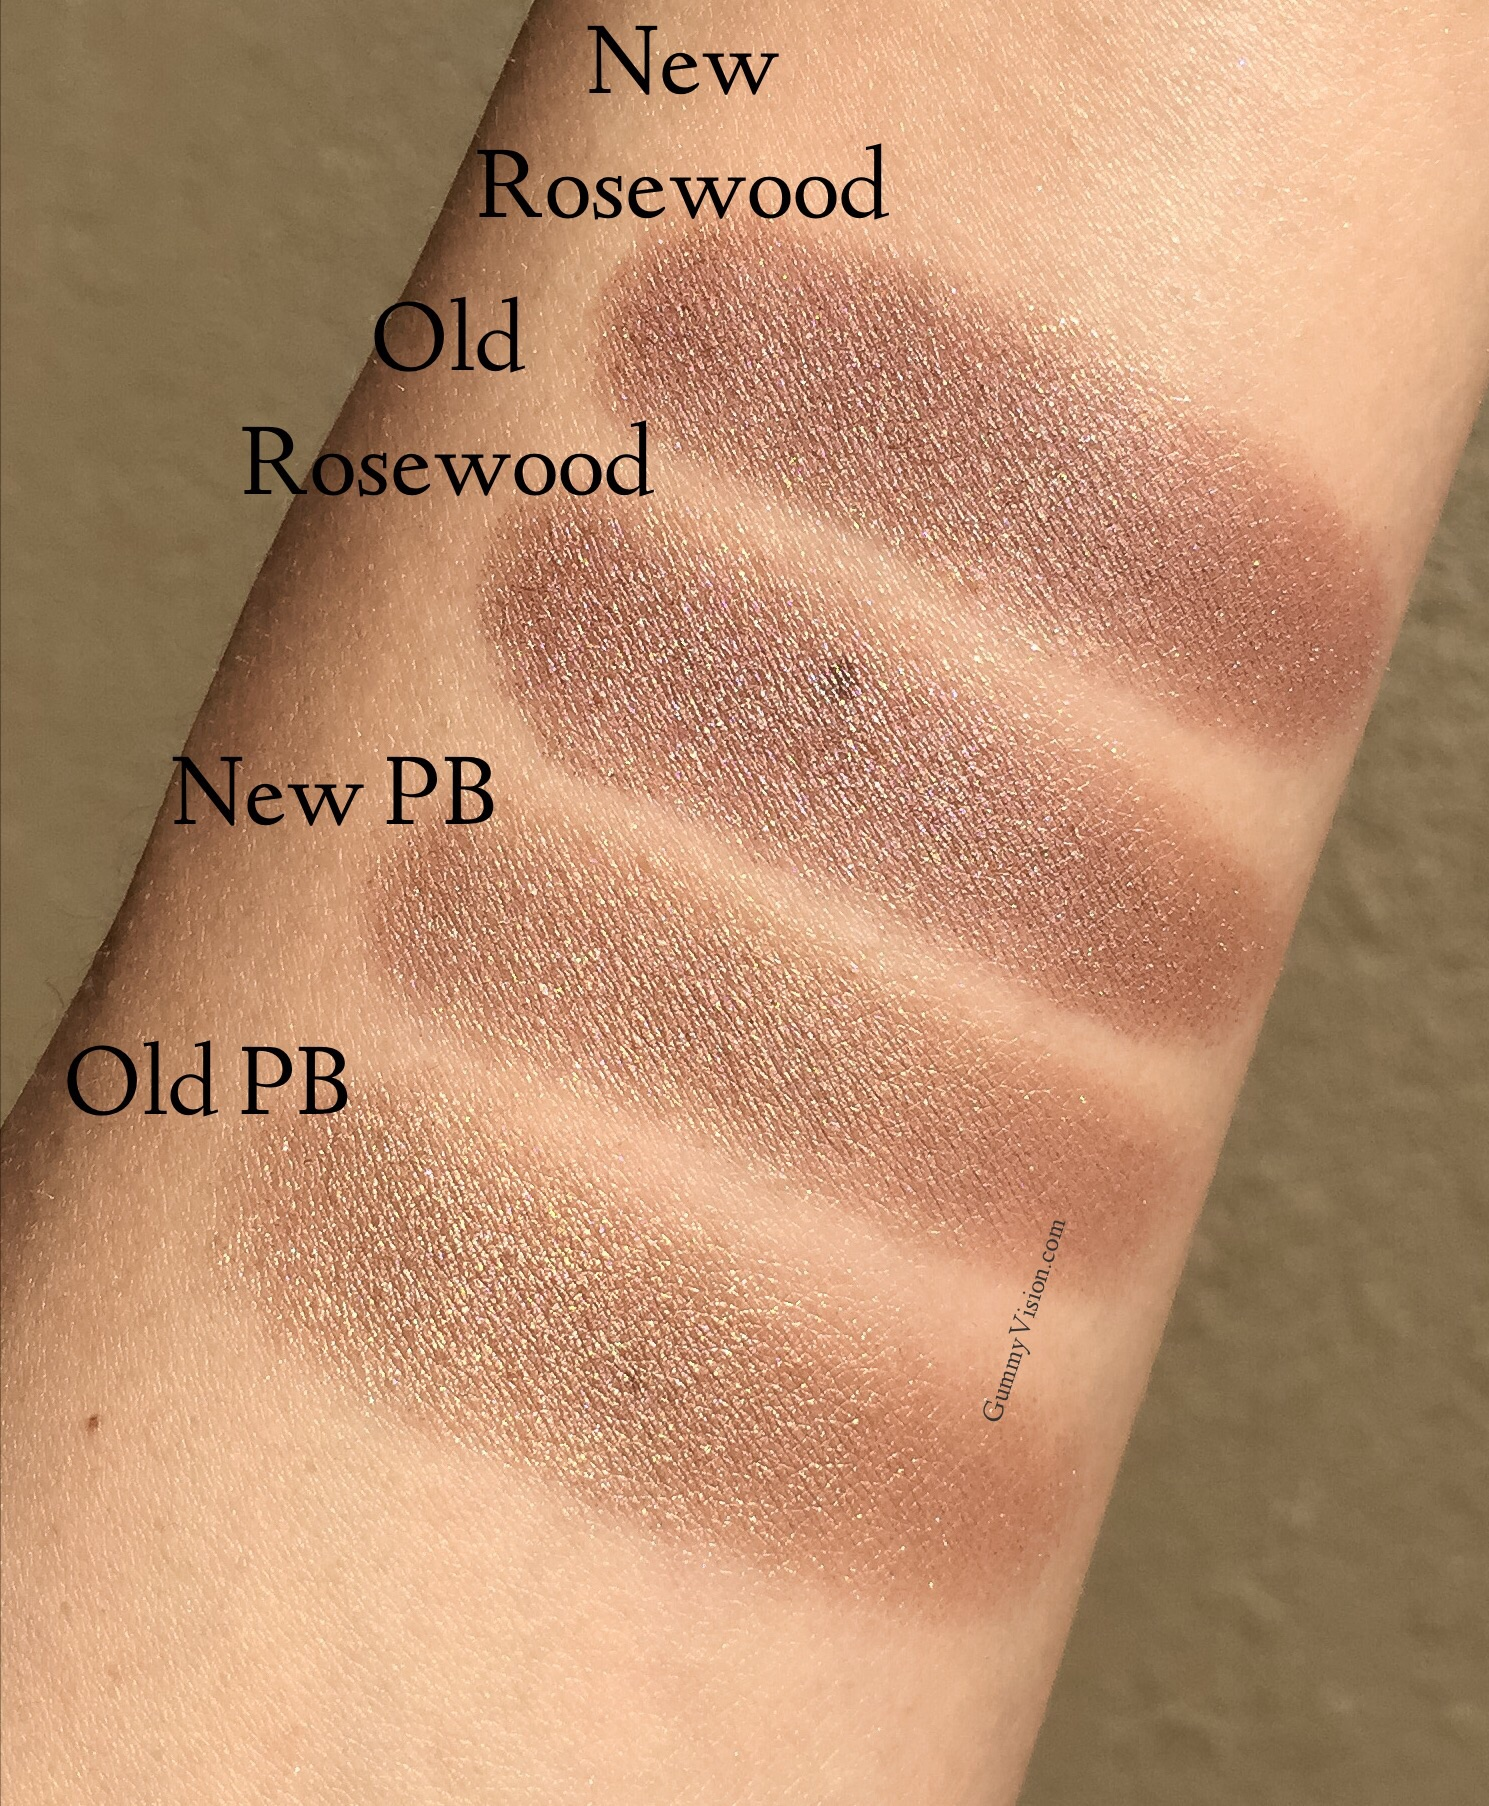 Sunlight. New Burberry Wet and Dry Silk Eyeshadows in Pale Barley and Rosewood vs. the old Pale Barley and Rosewood- gummyvision.com